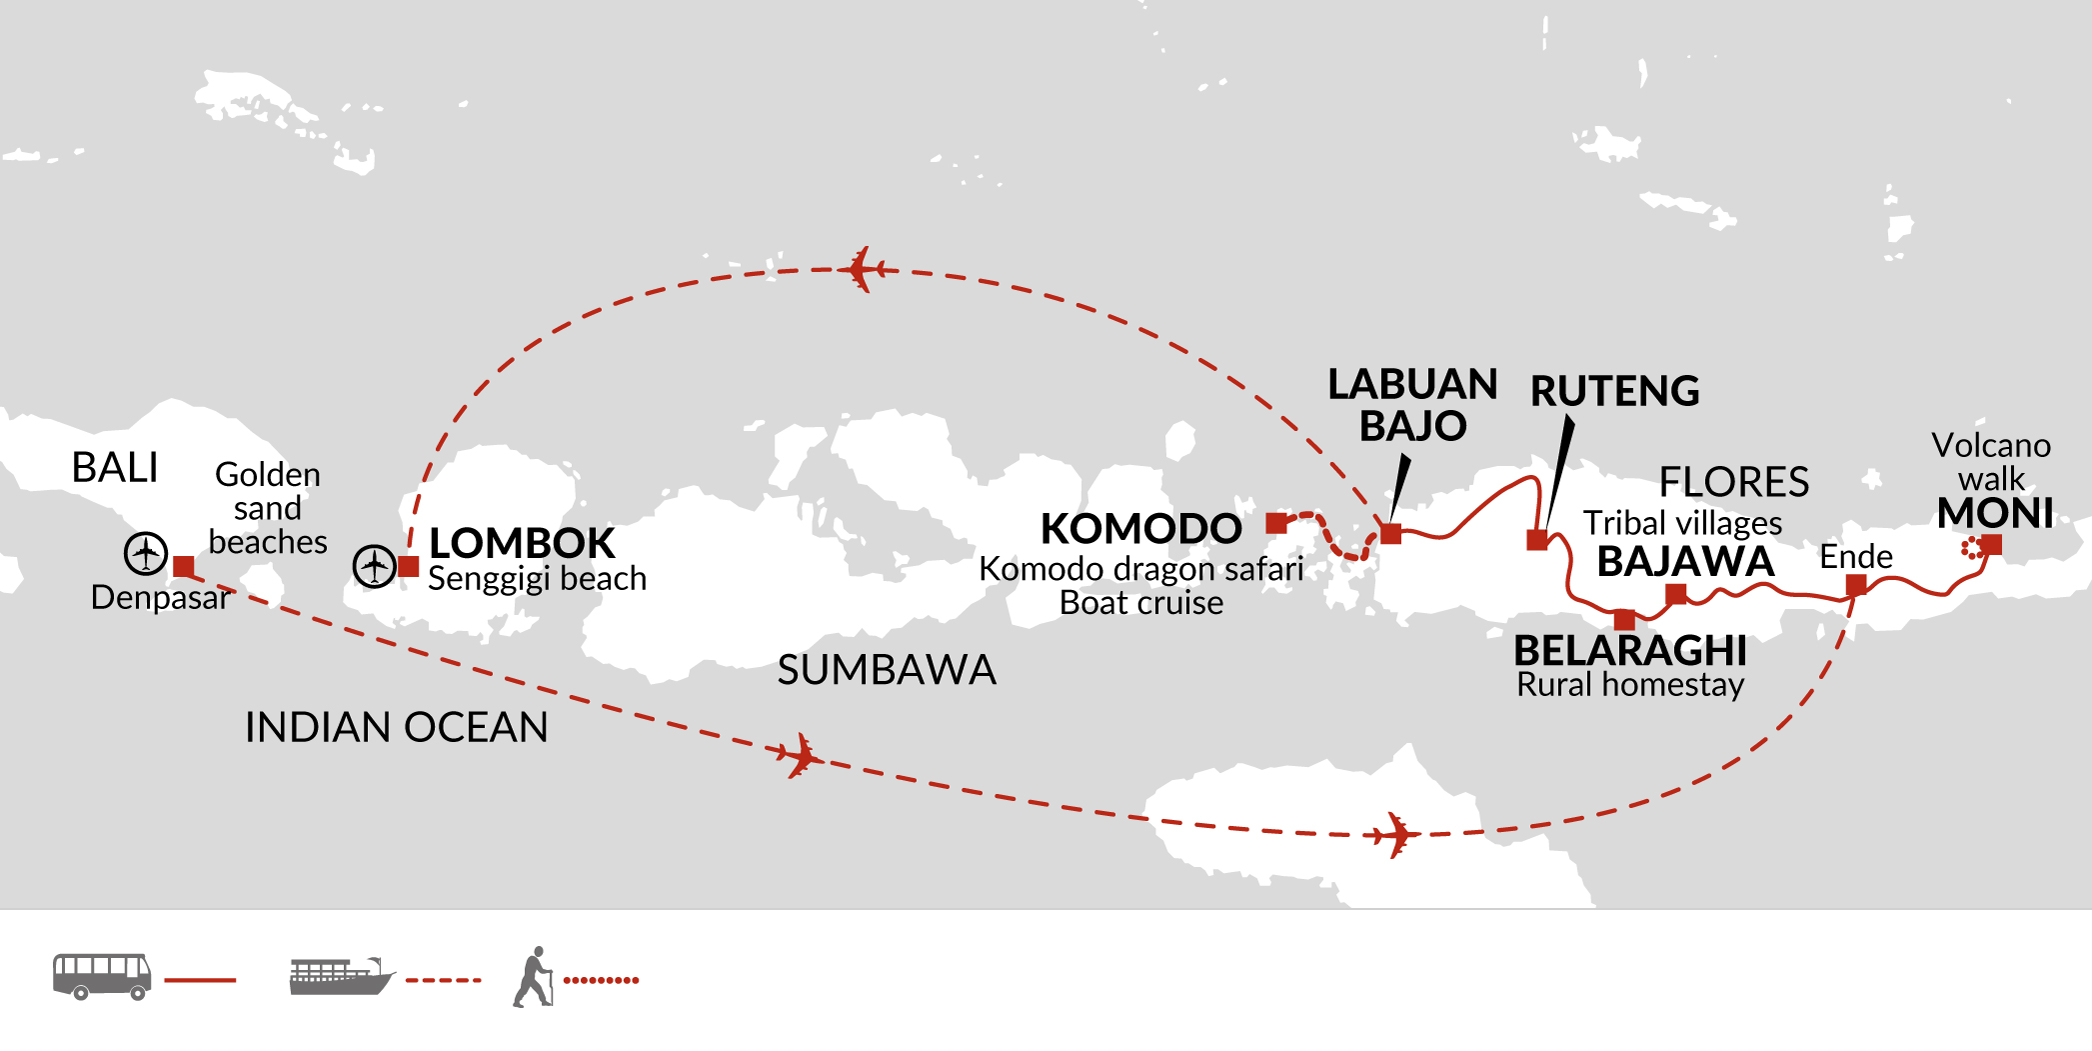 Family Holiday In Indonesia With Volcanoes & Komodo